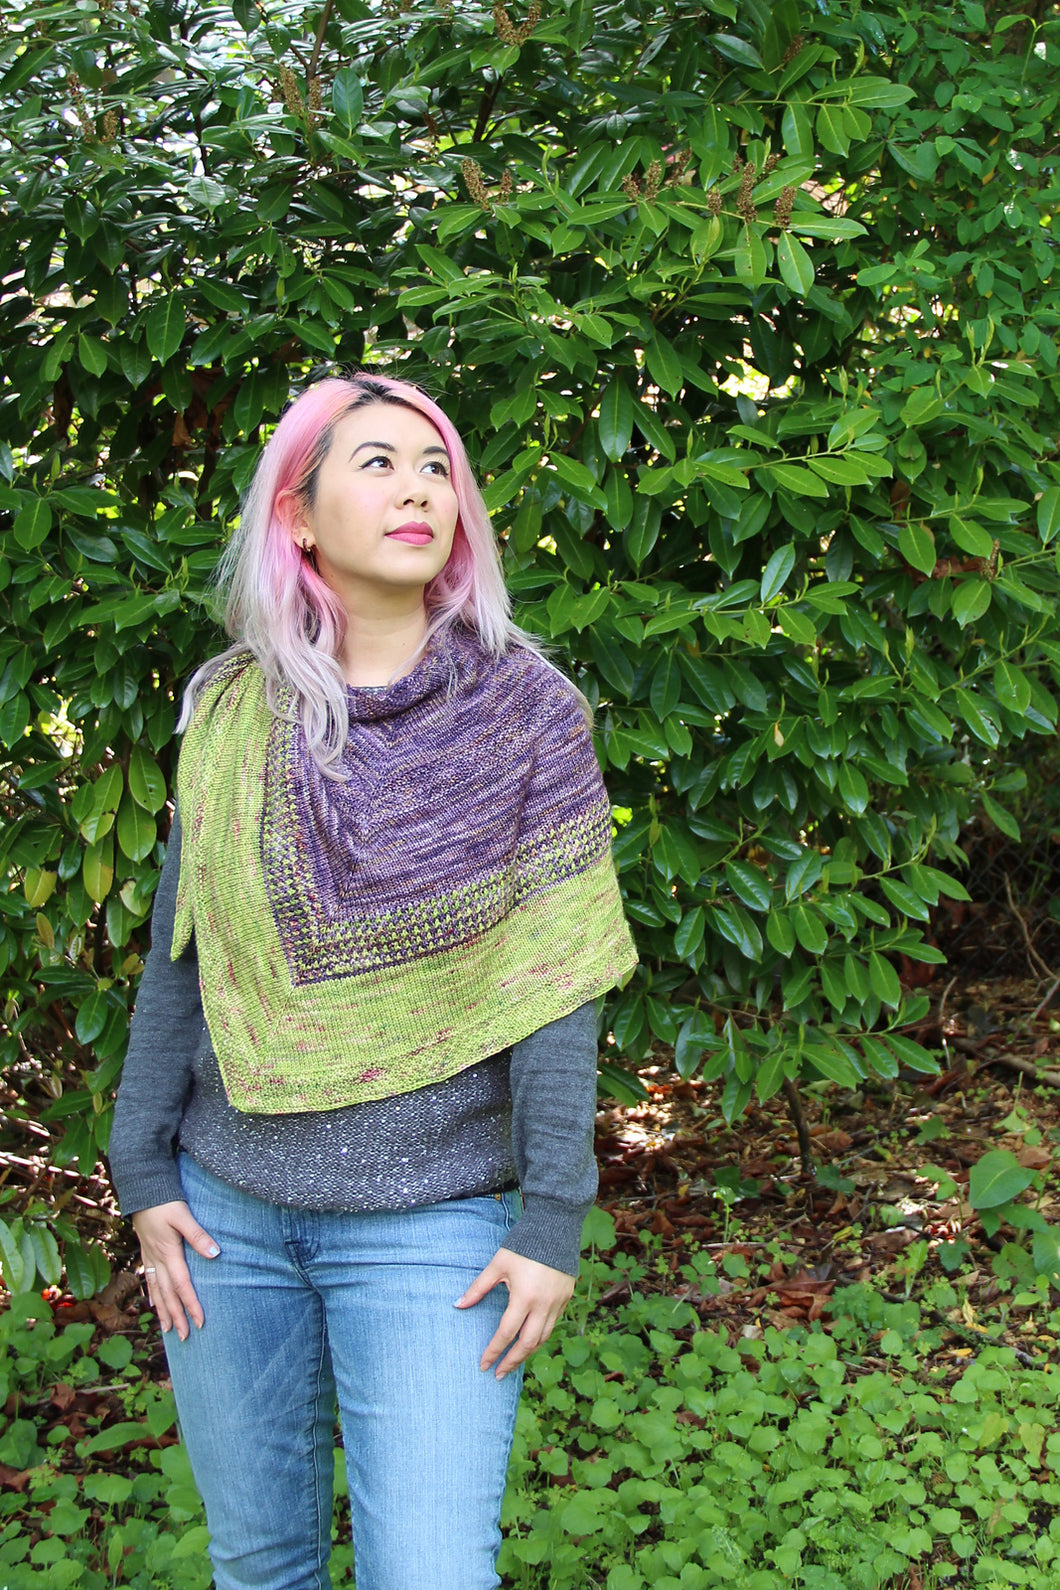 Butterfly Wings Shawl Kit